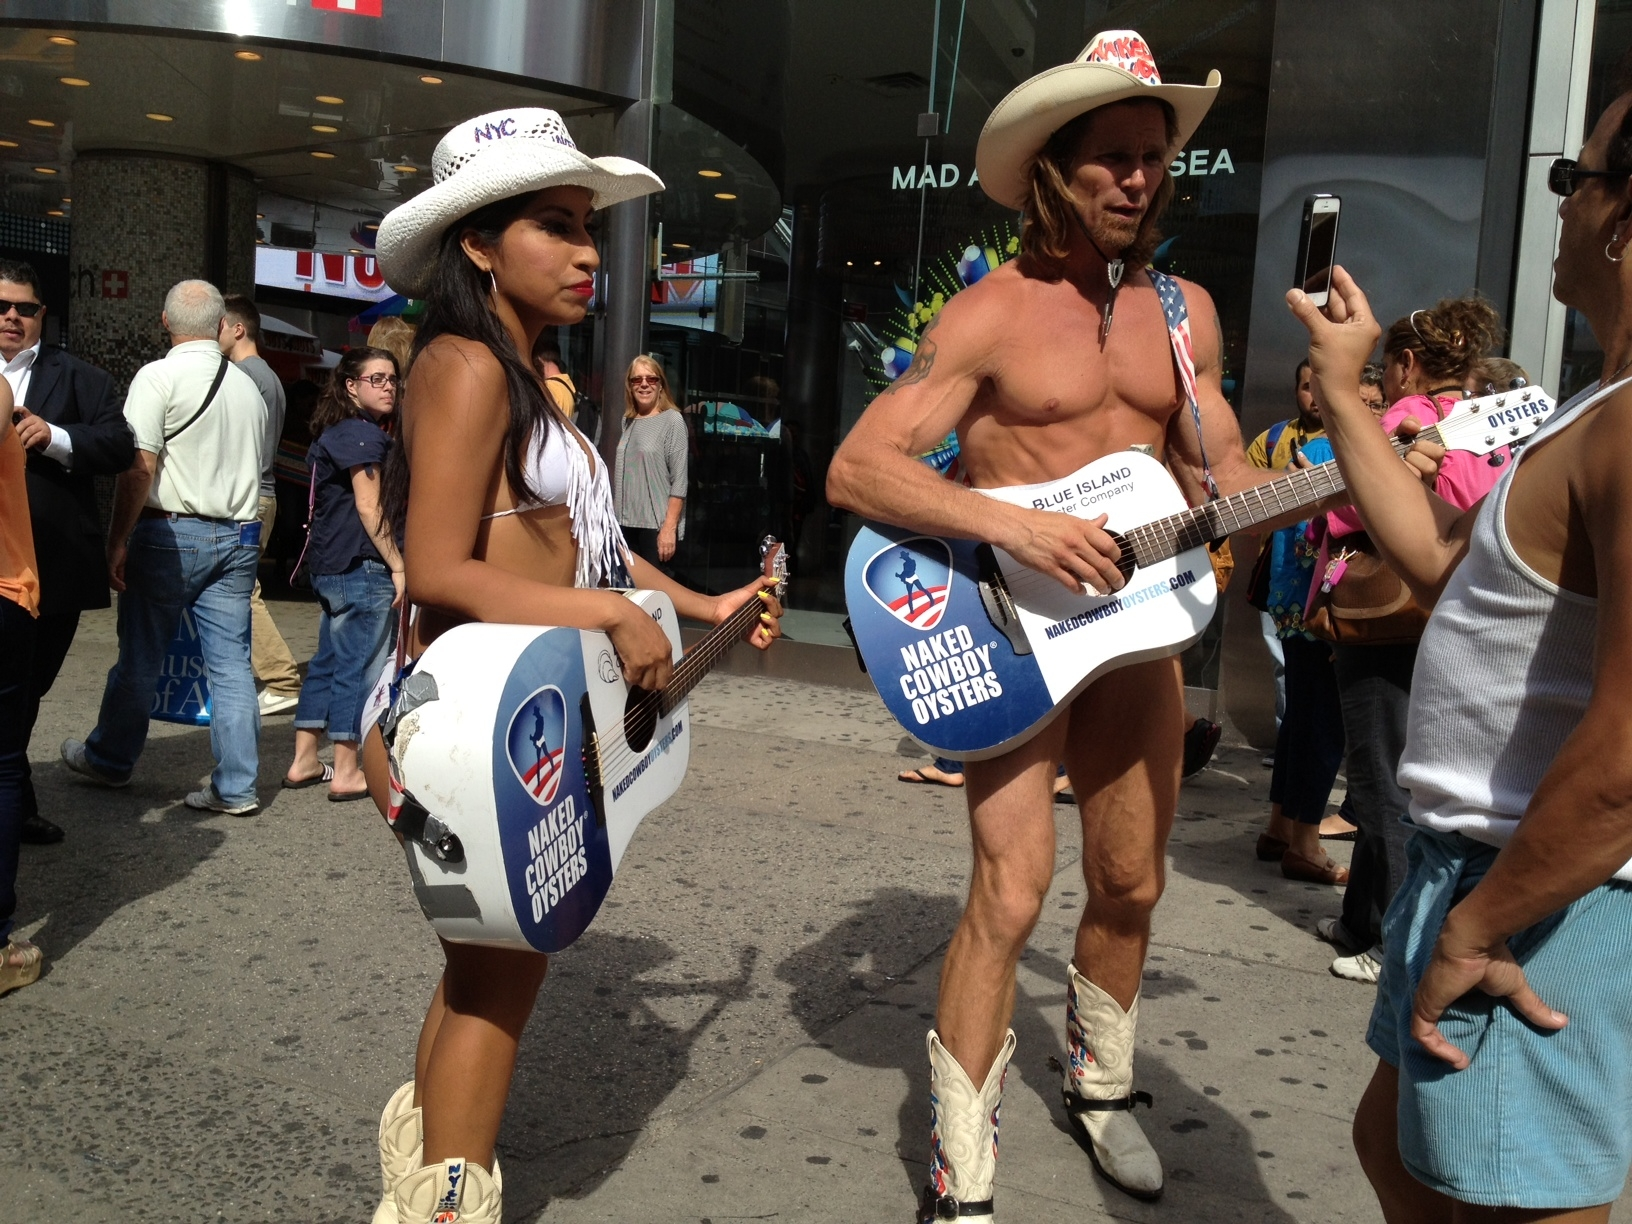 Share Naked cow girl nyc you